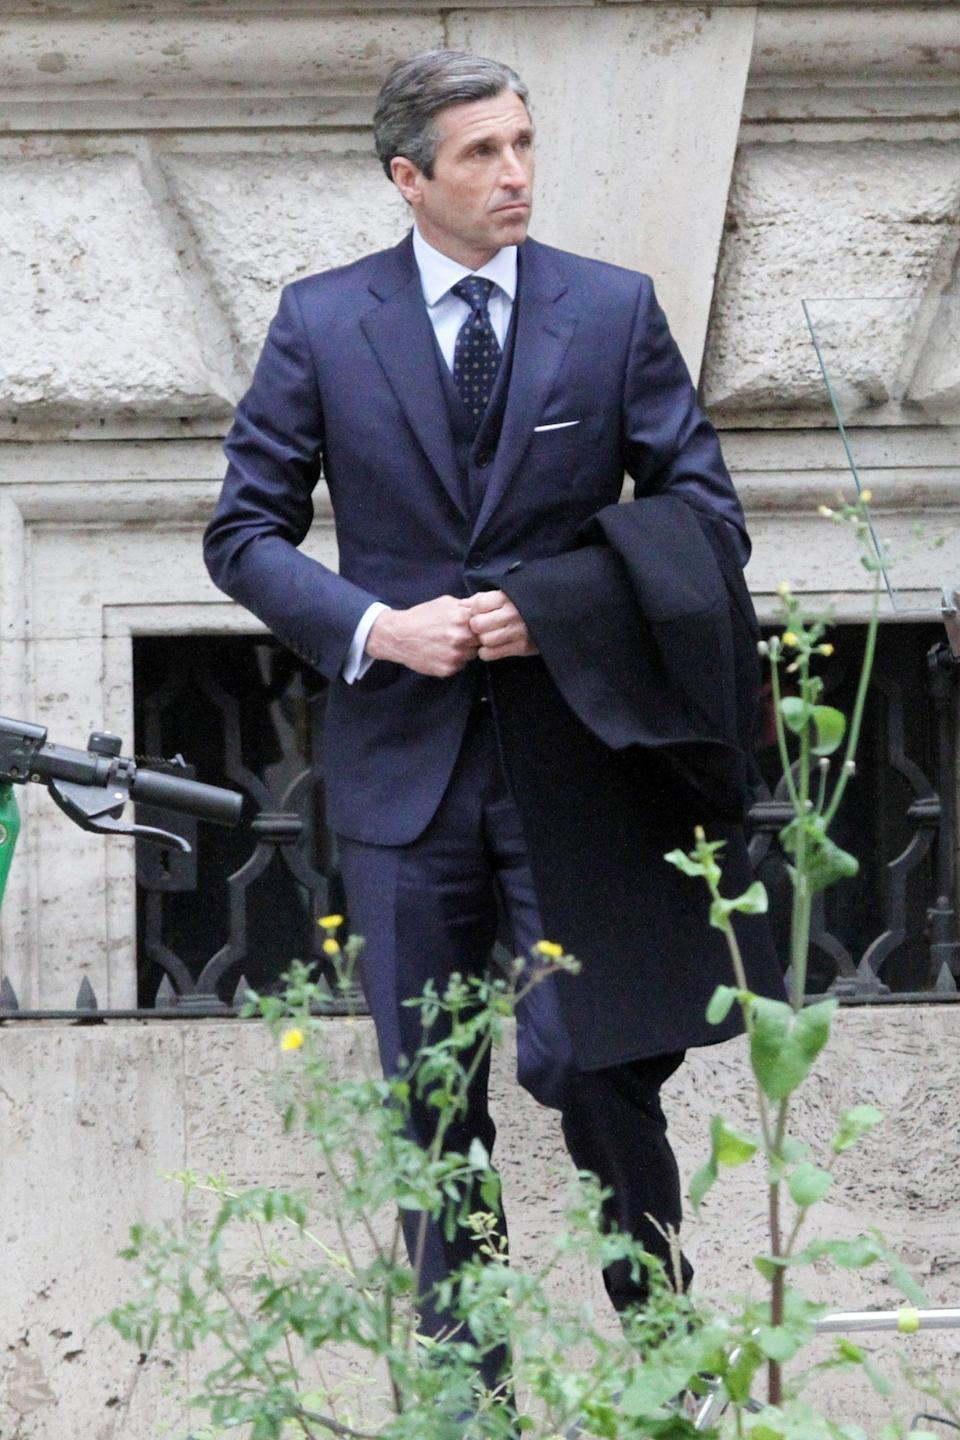 <p>A dapper Patrick Dempsey films <em>Devils</em> in Rome on Thursday.</p>